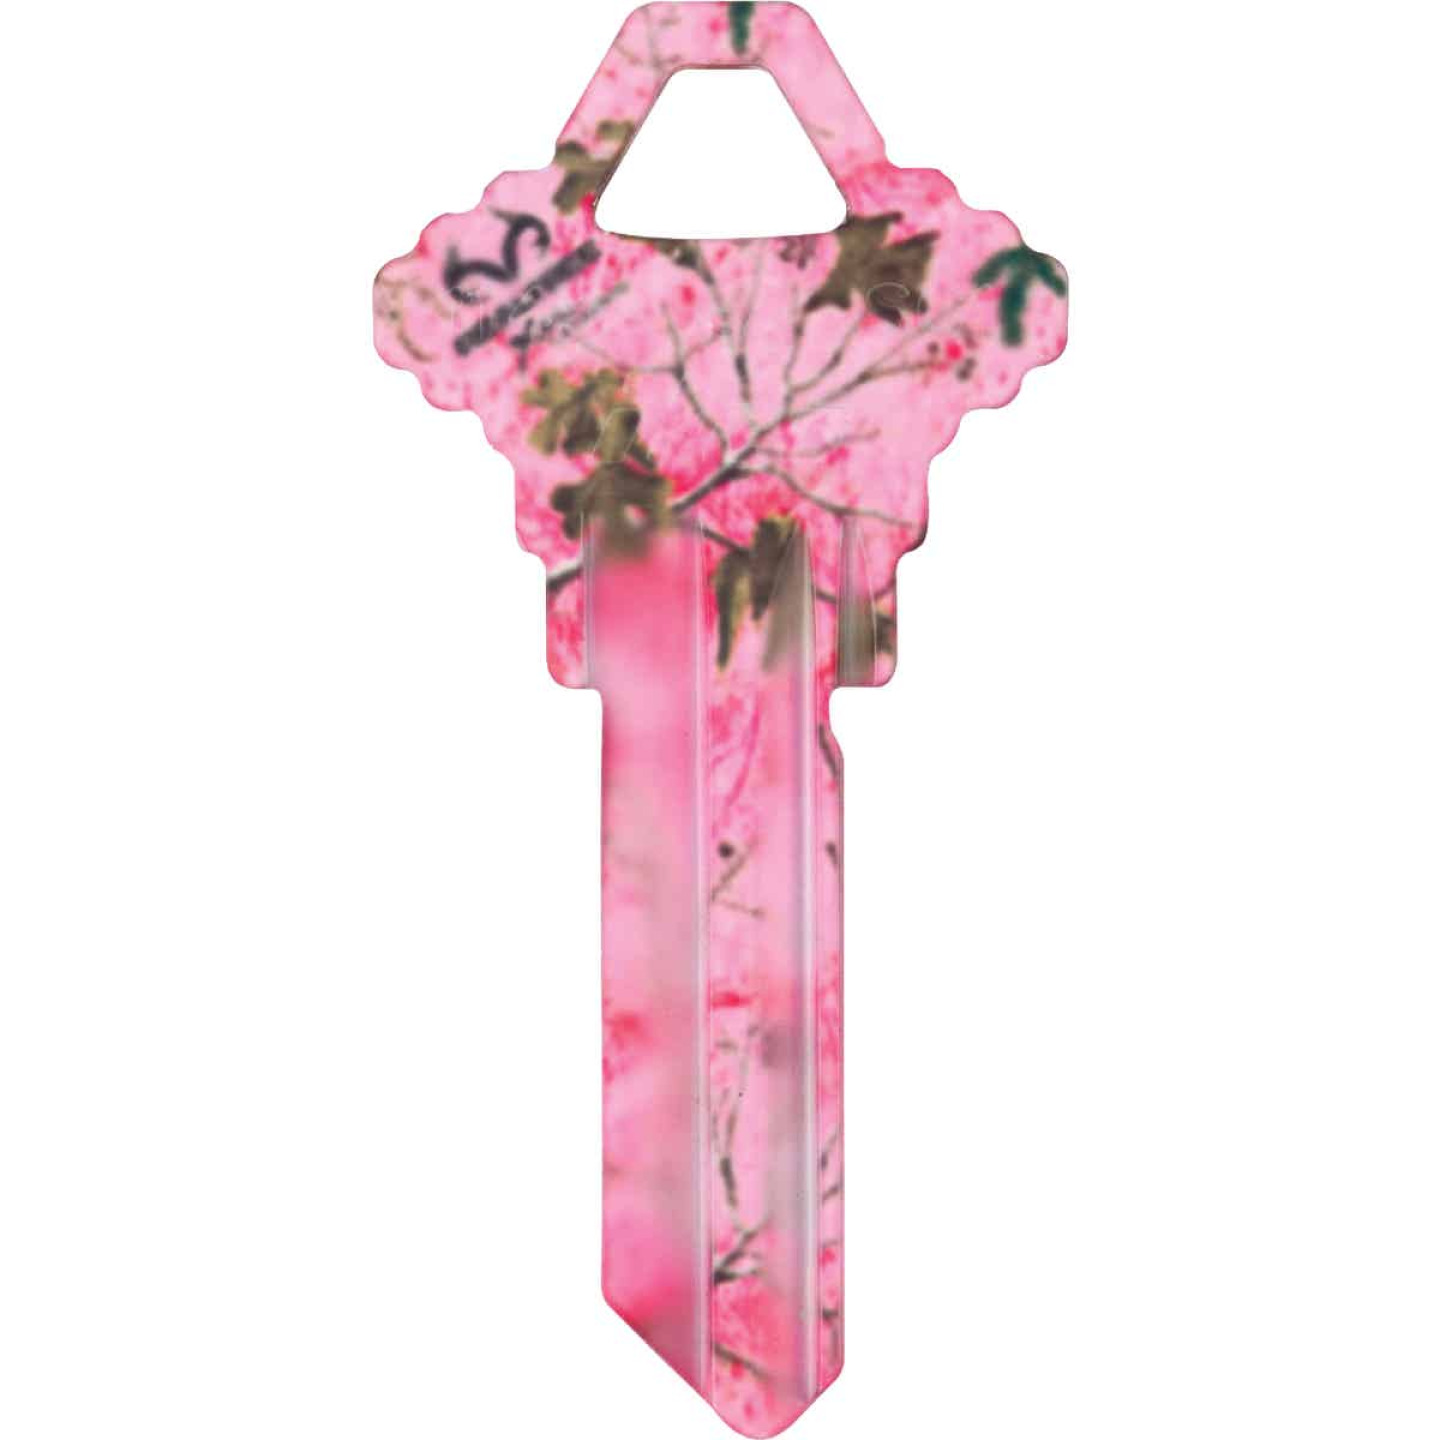 ILCO Schlage Realtree Paradise Pink Camo Design Decorative Key, SC1  Image 1